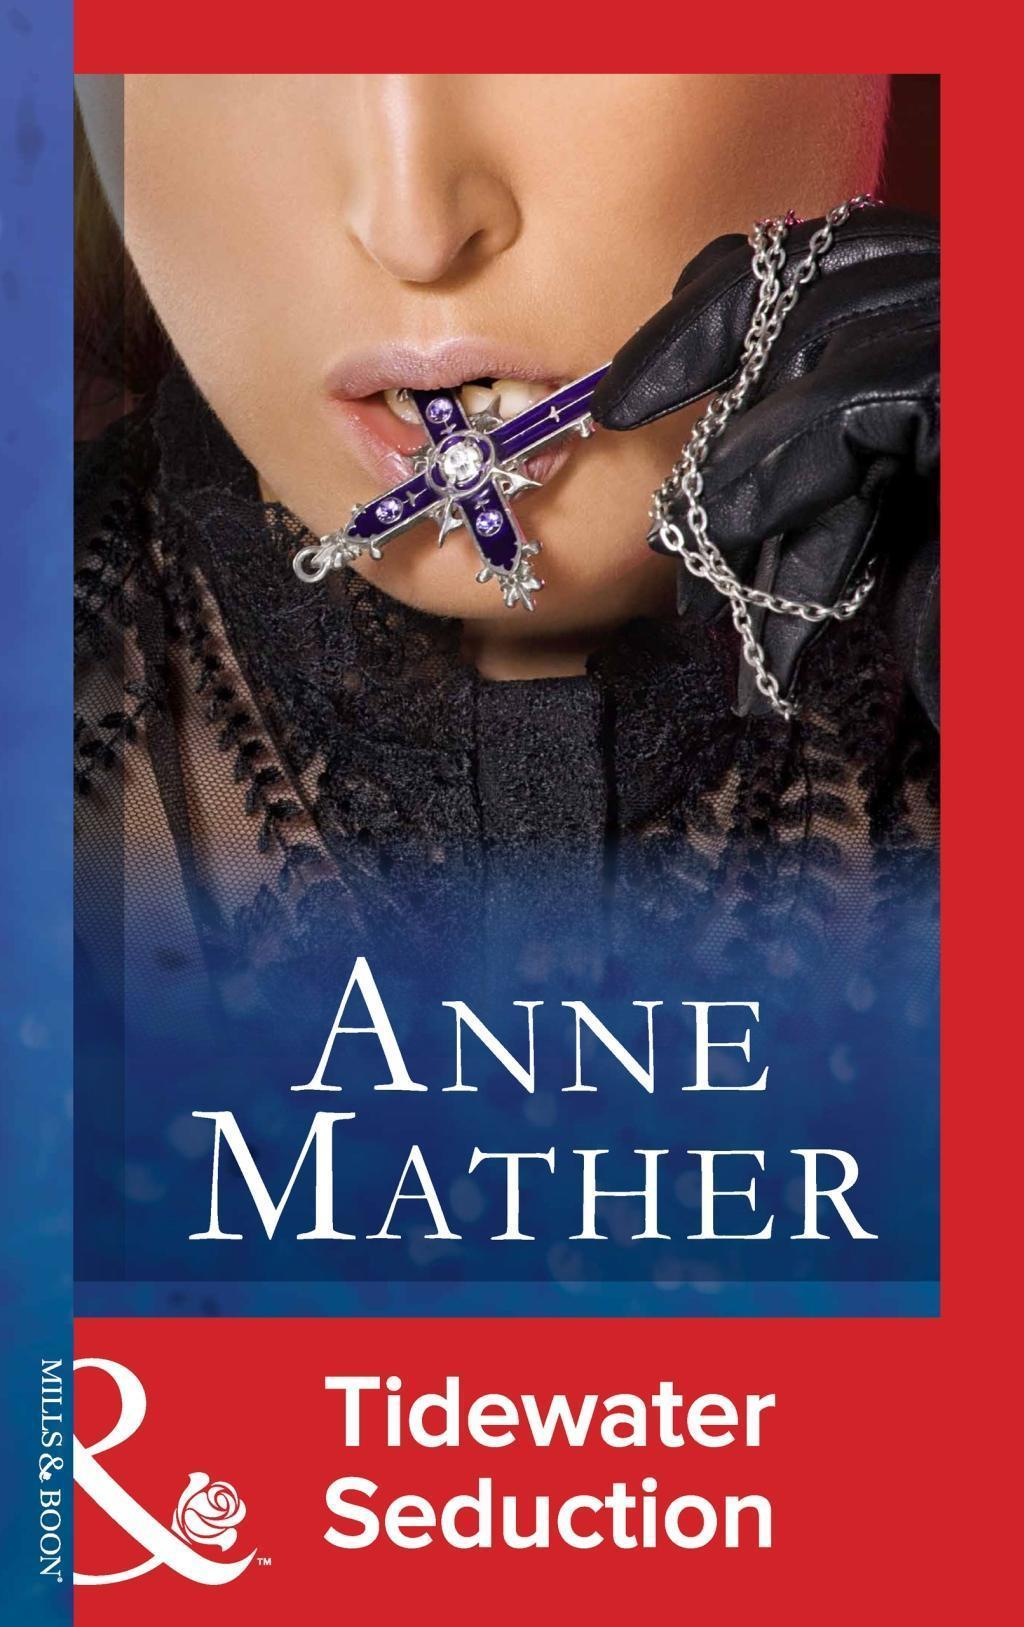 Tidewater Seduction (Mills & Boon Modern) (The Anne Mather Collection)